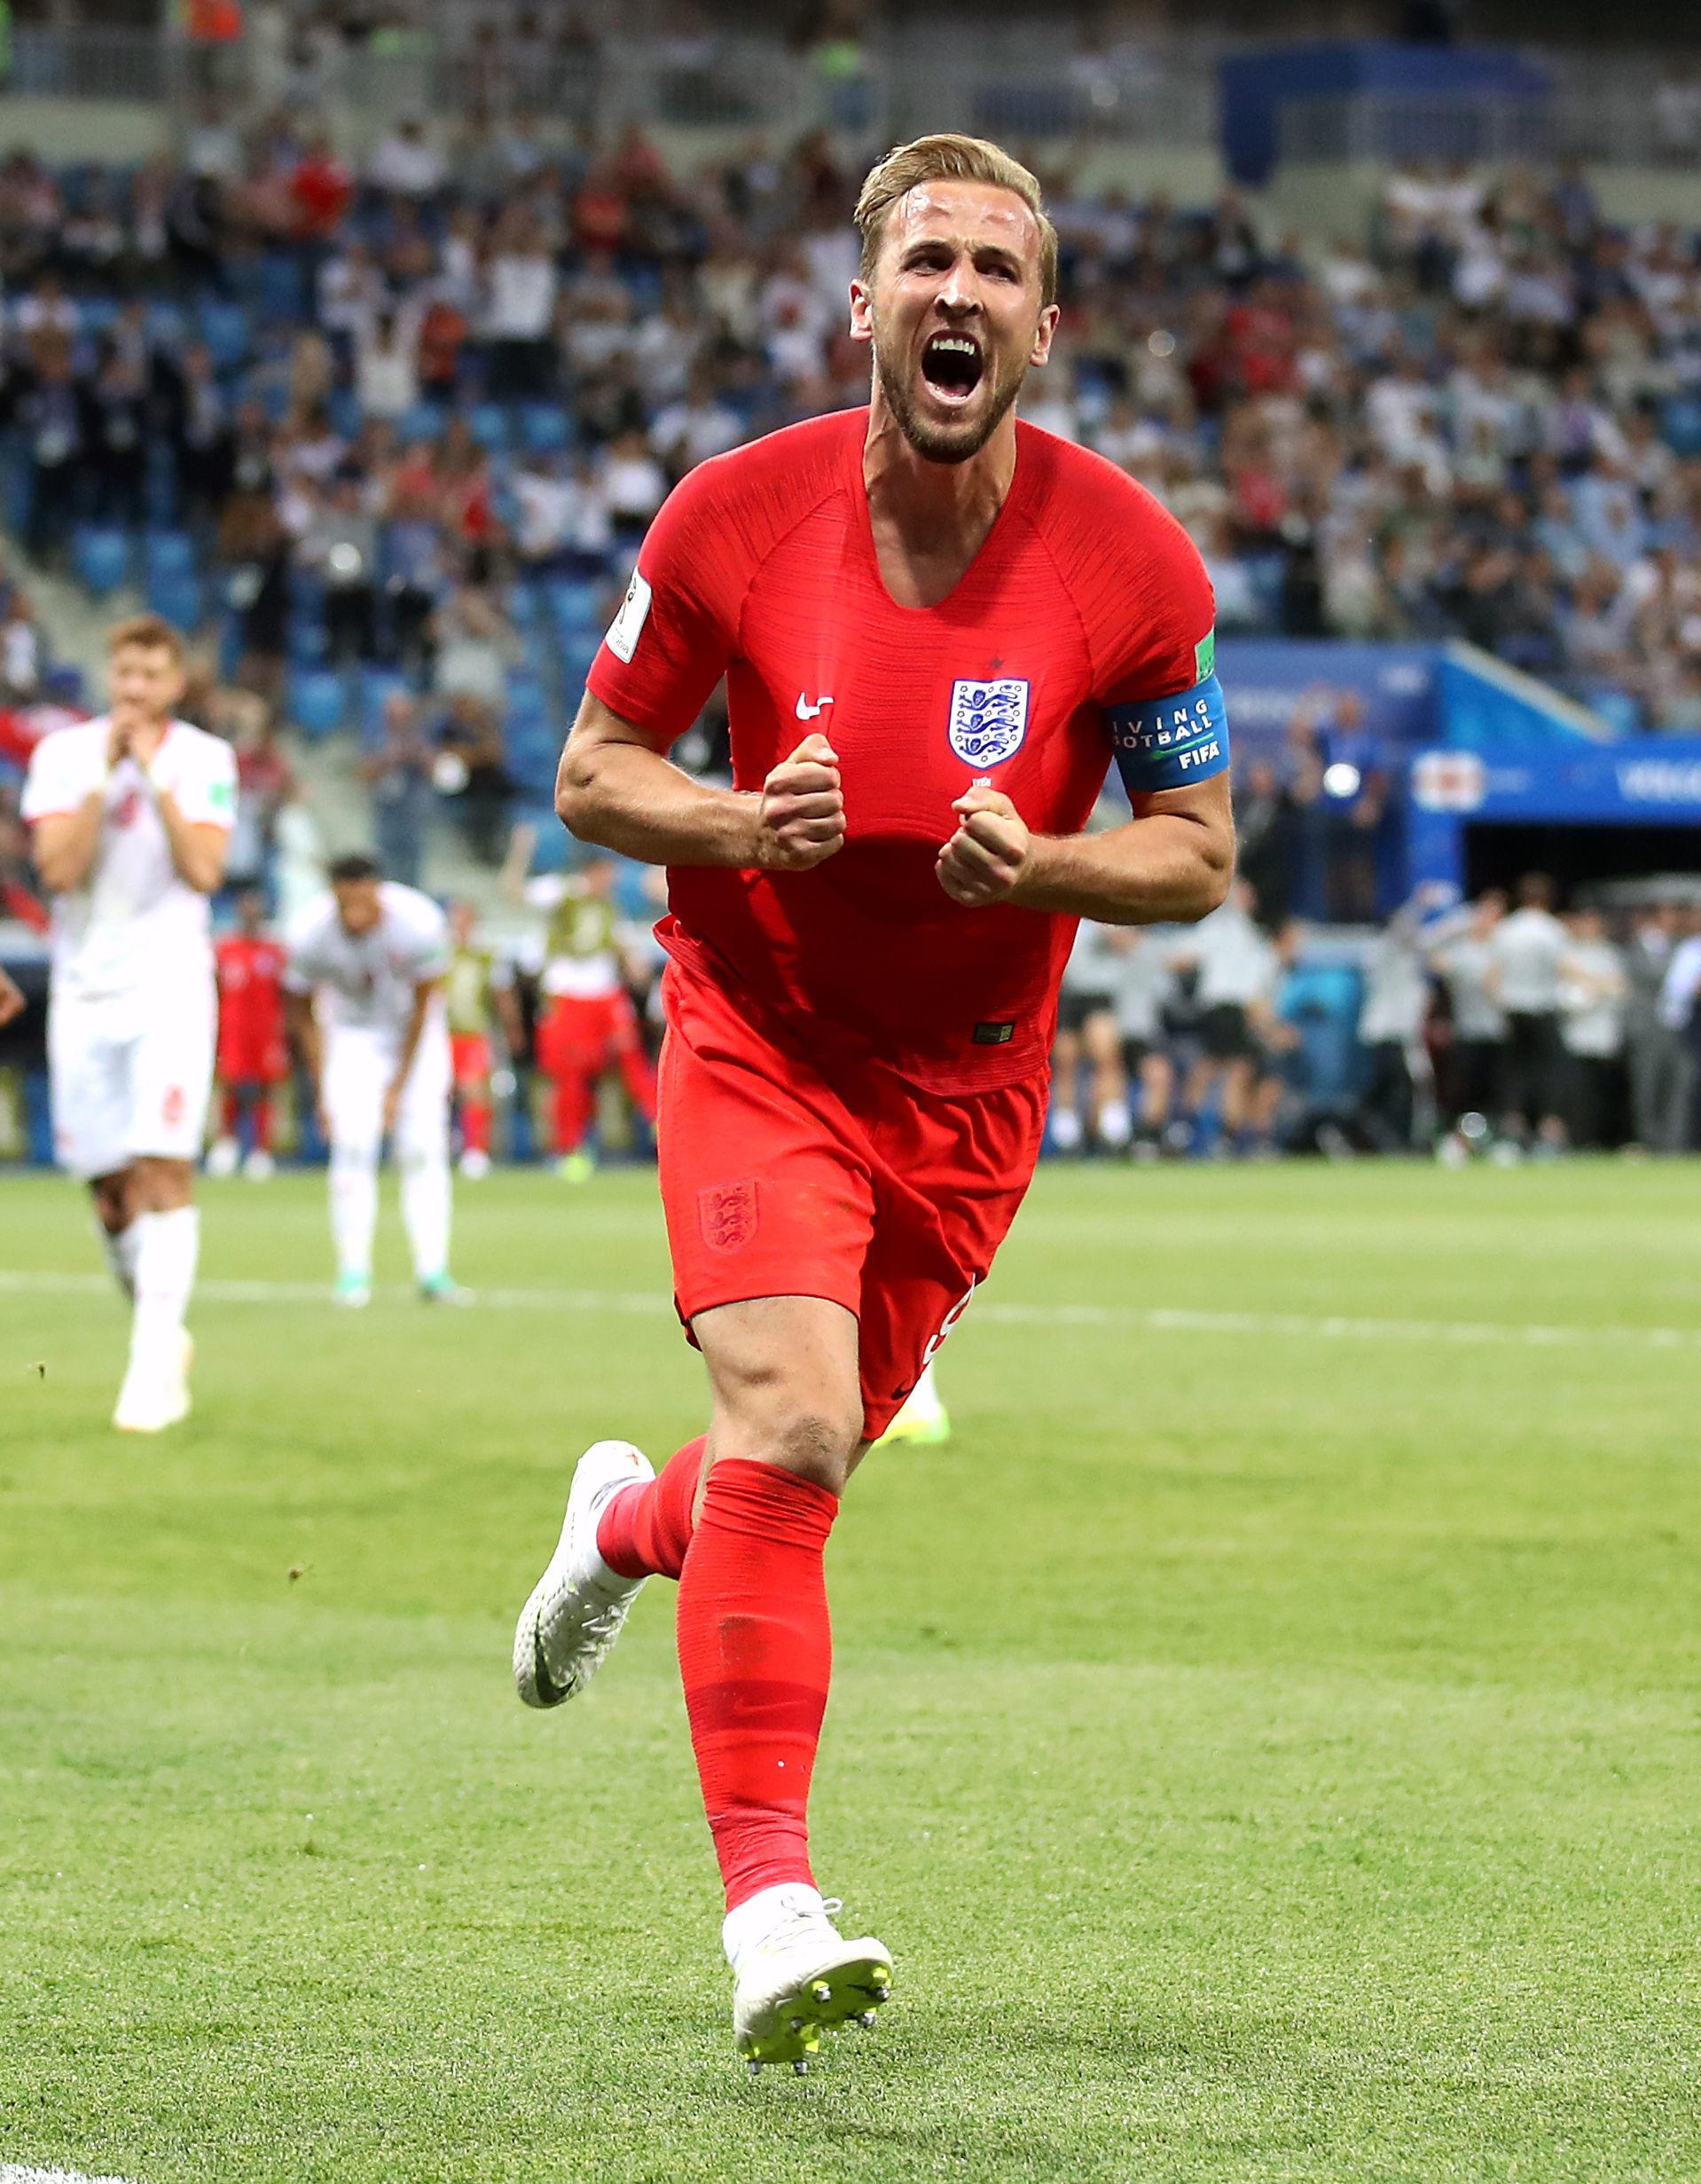 Harry Kane will be looking to add to his tally of 19 England goals during the Nations League